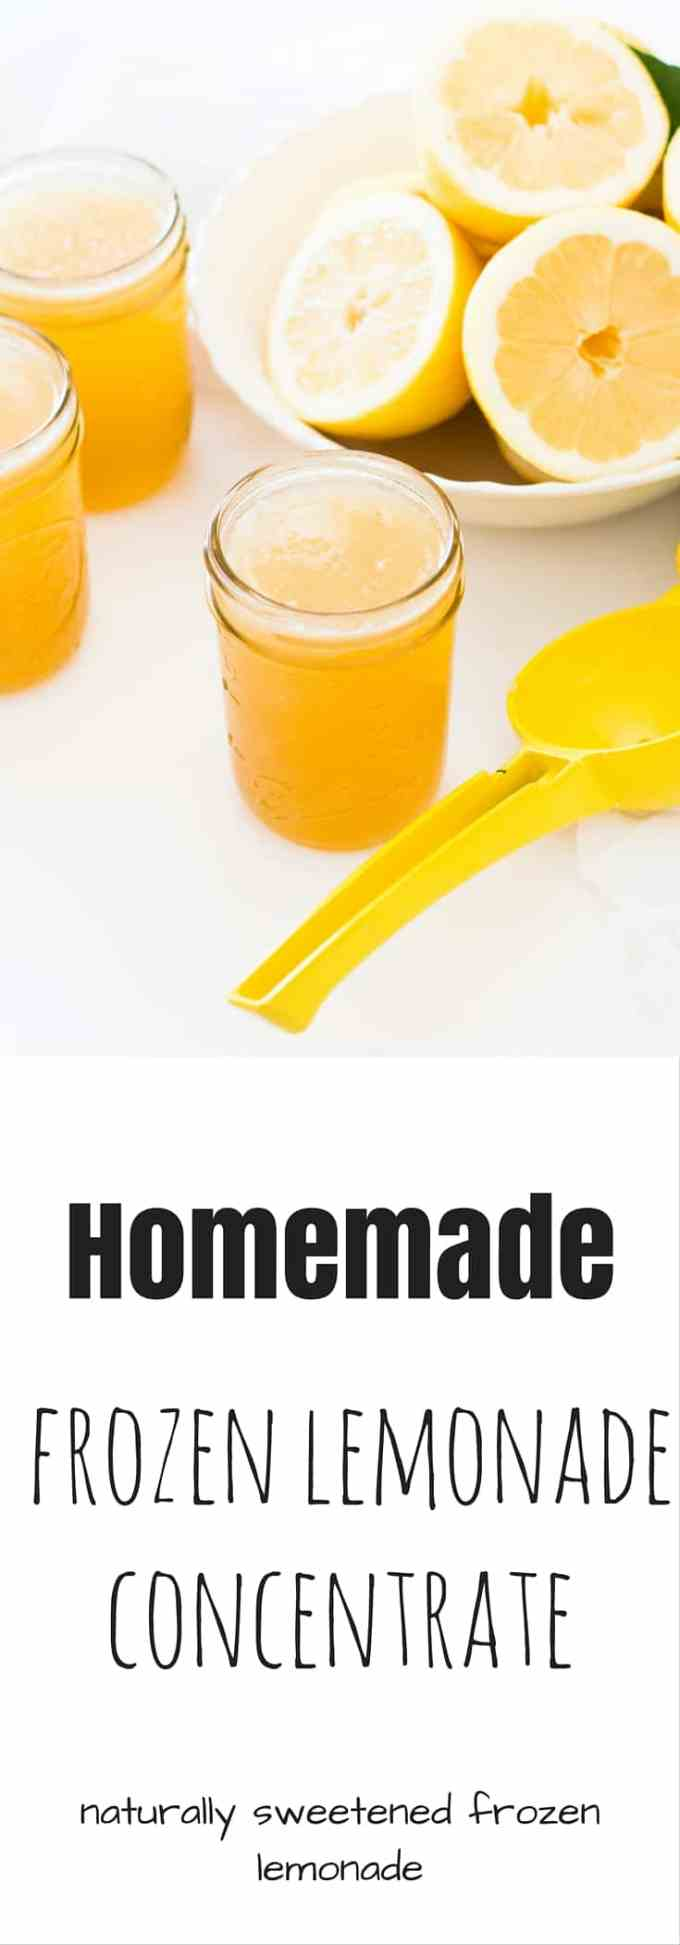 Be prepared for summer with some frozen Ice Lemonade Concentrate in the freezer. Naturally sweetened and delicious. Only 3 ingredients